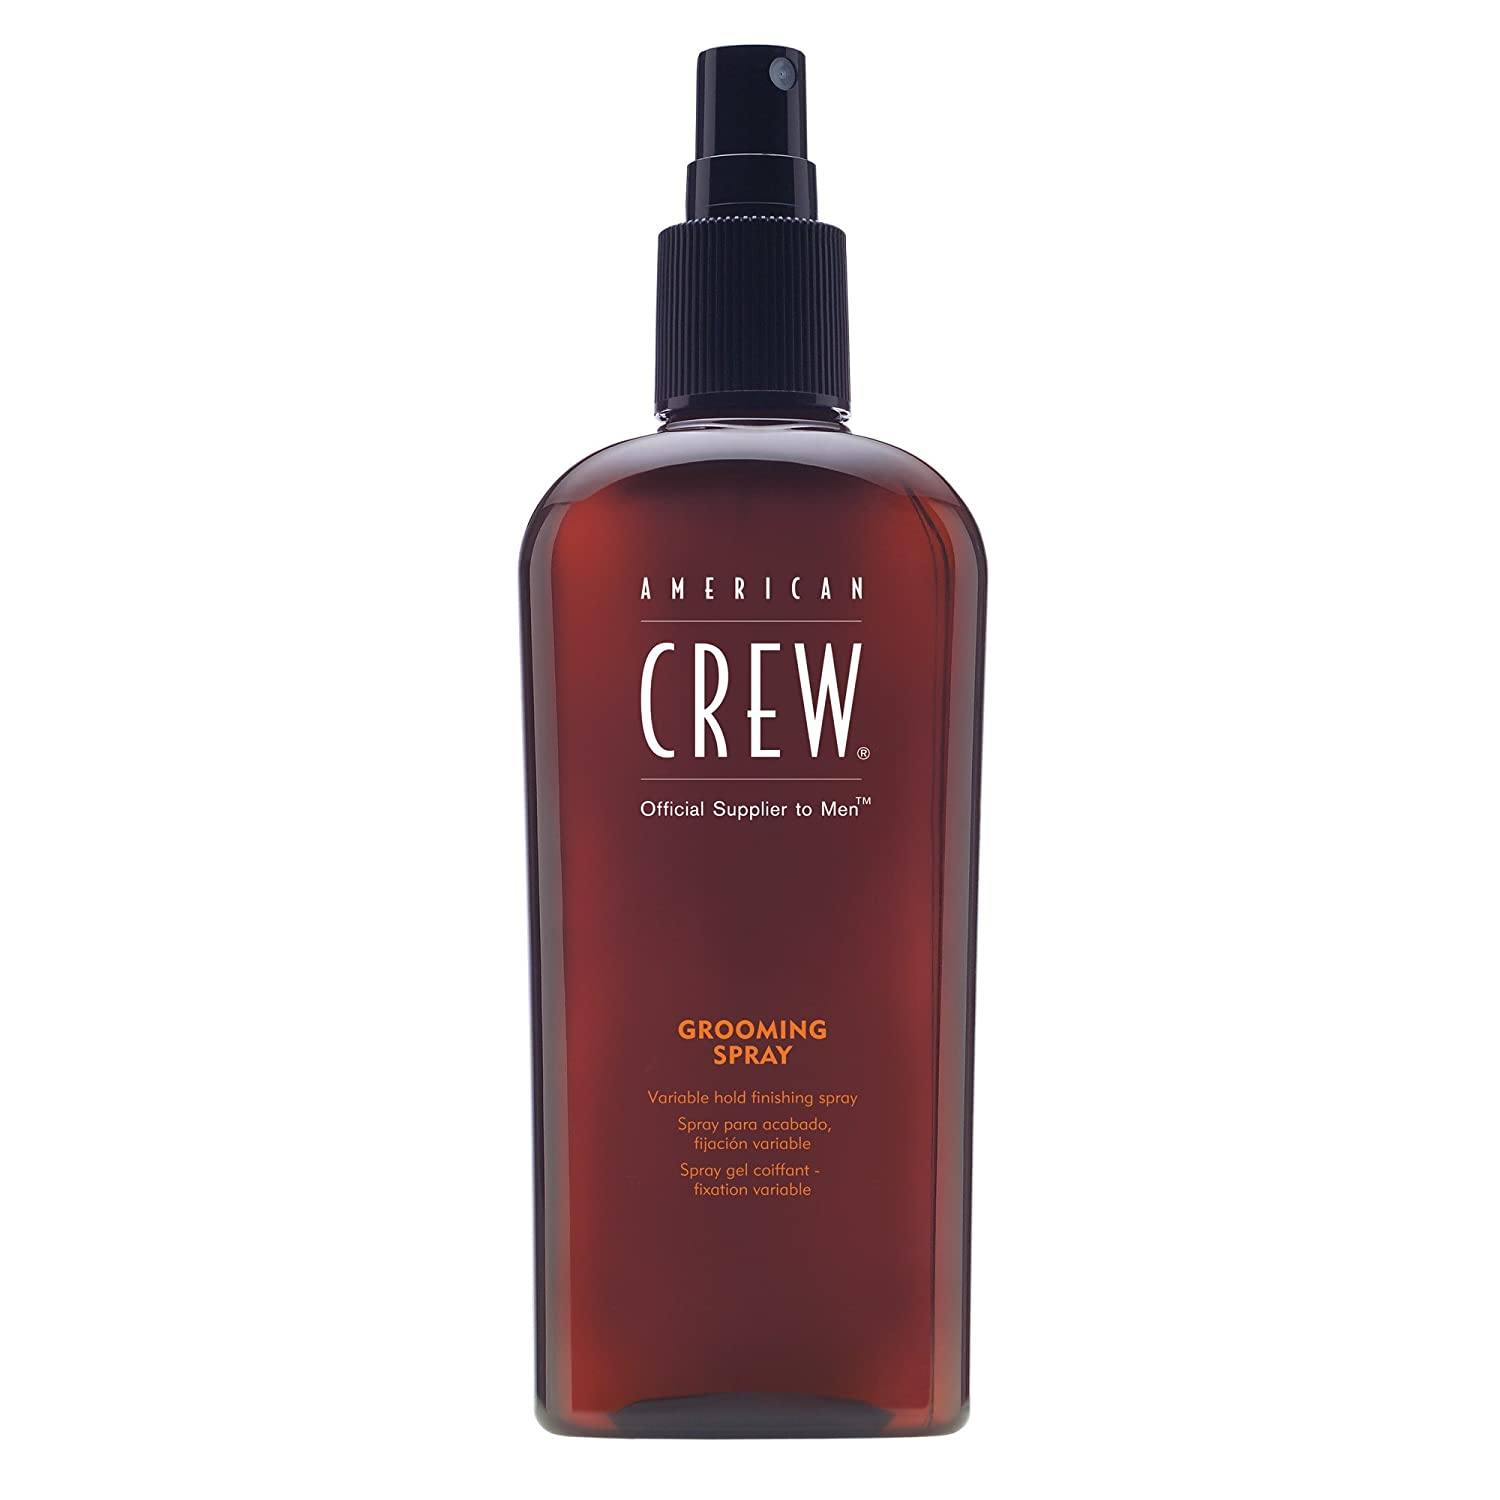 GROOMING SPRAY 250 ml American Crew 7206318000